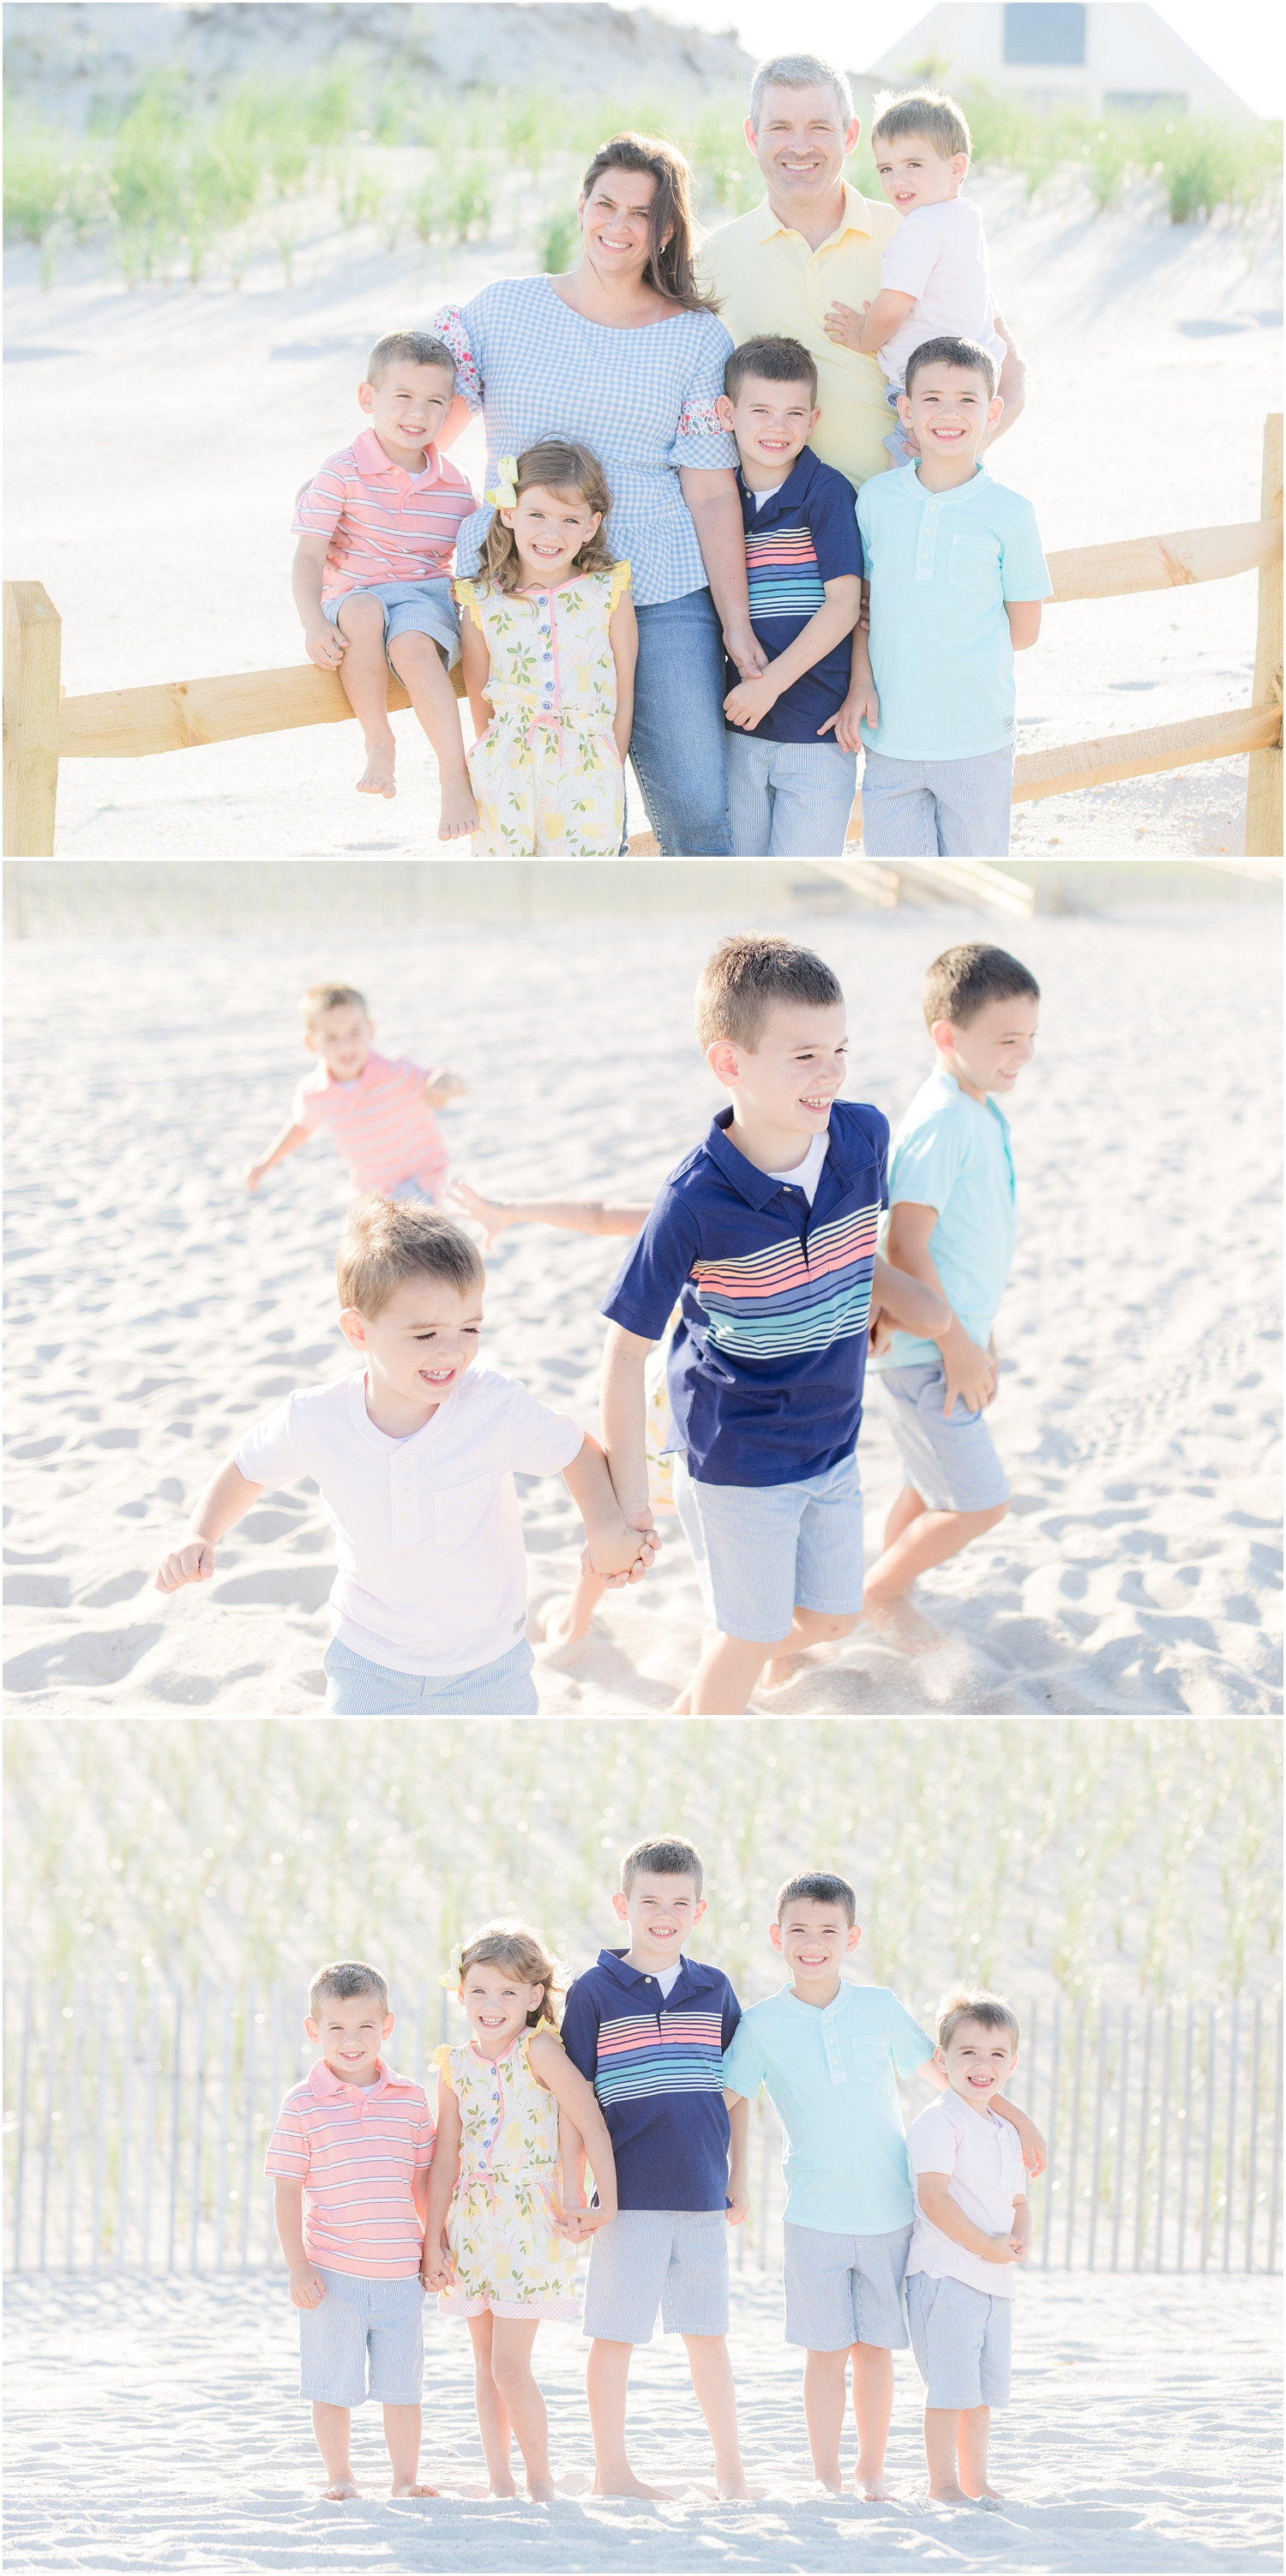 Family photos on the beach in Lavallette.